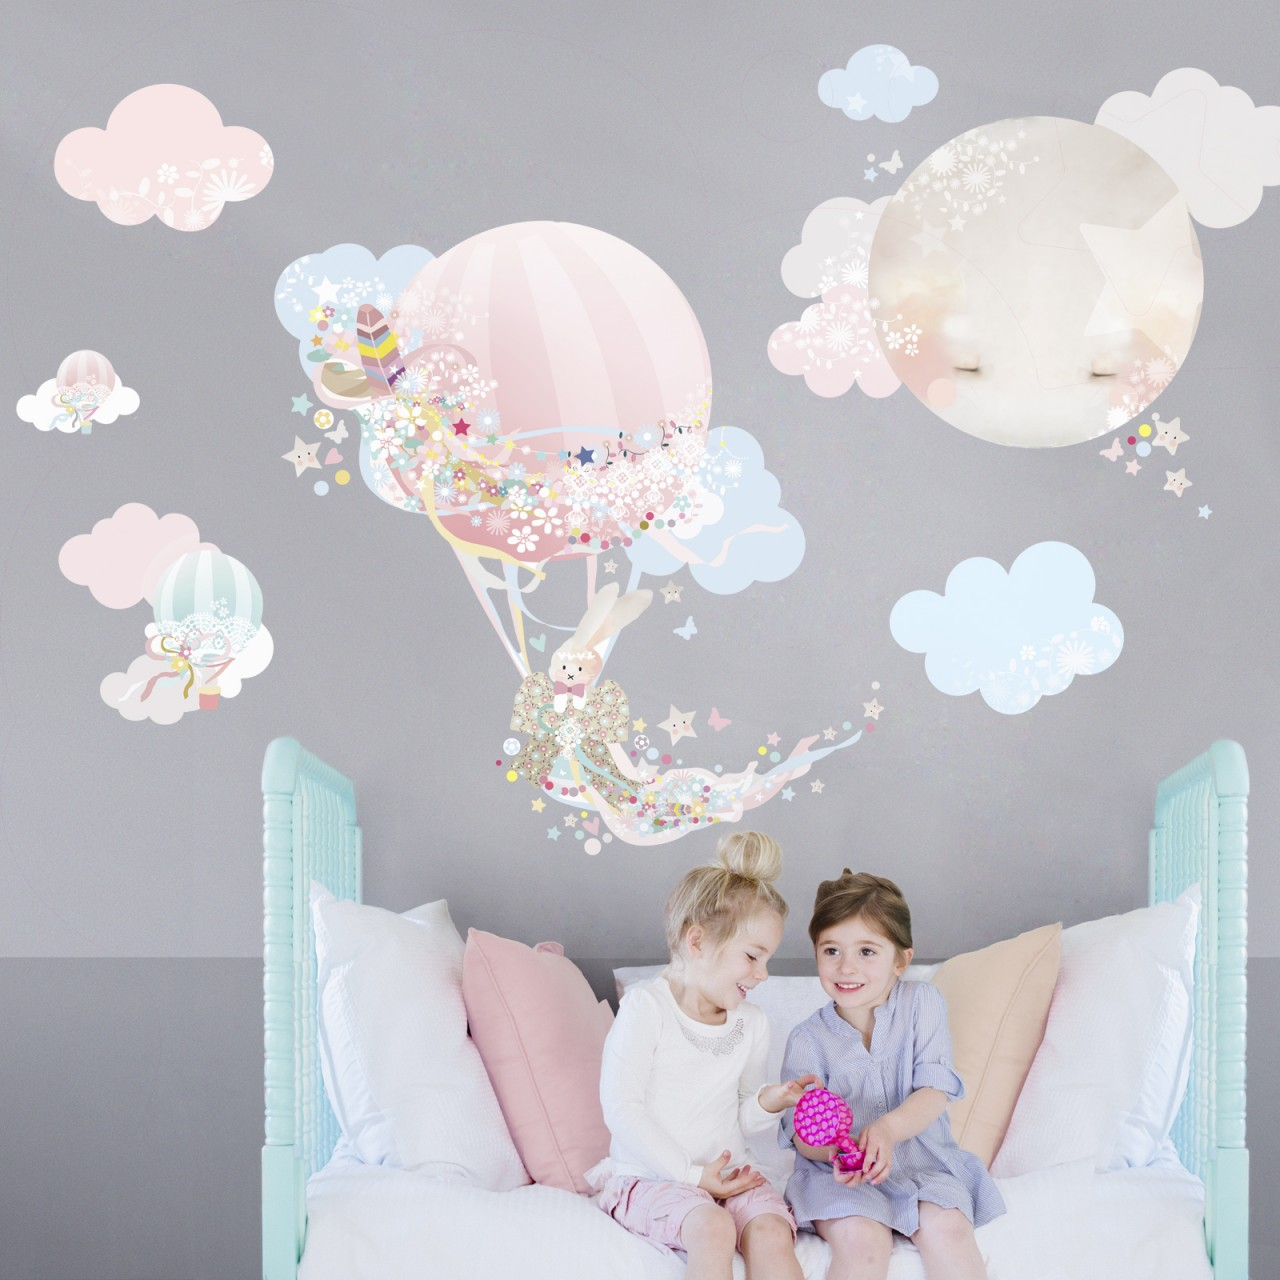 I M Fabric And Reusable Wahooo Magical Balloon Wall Decal Sticker